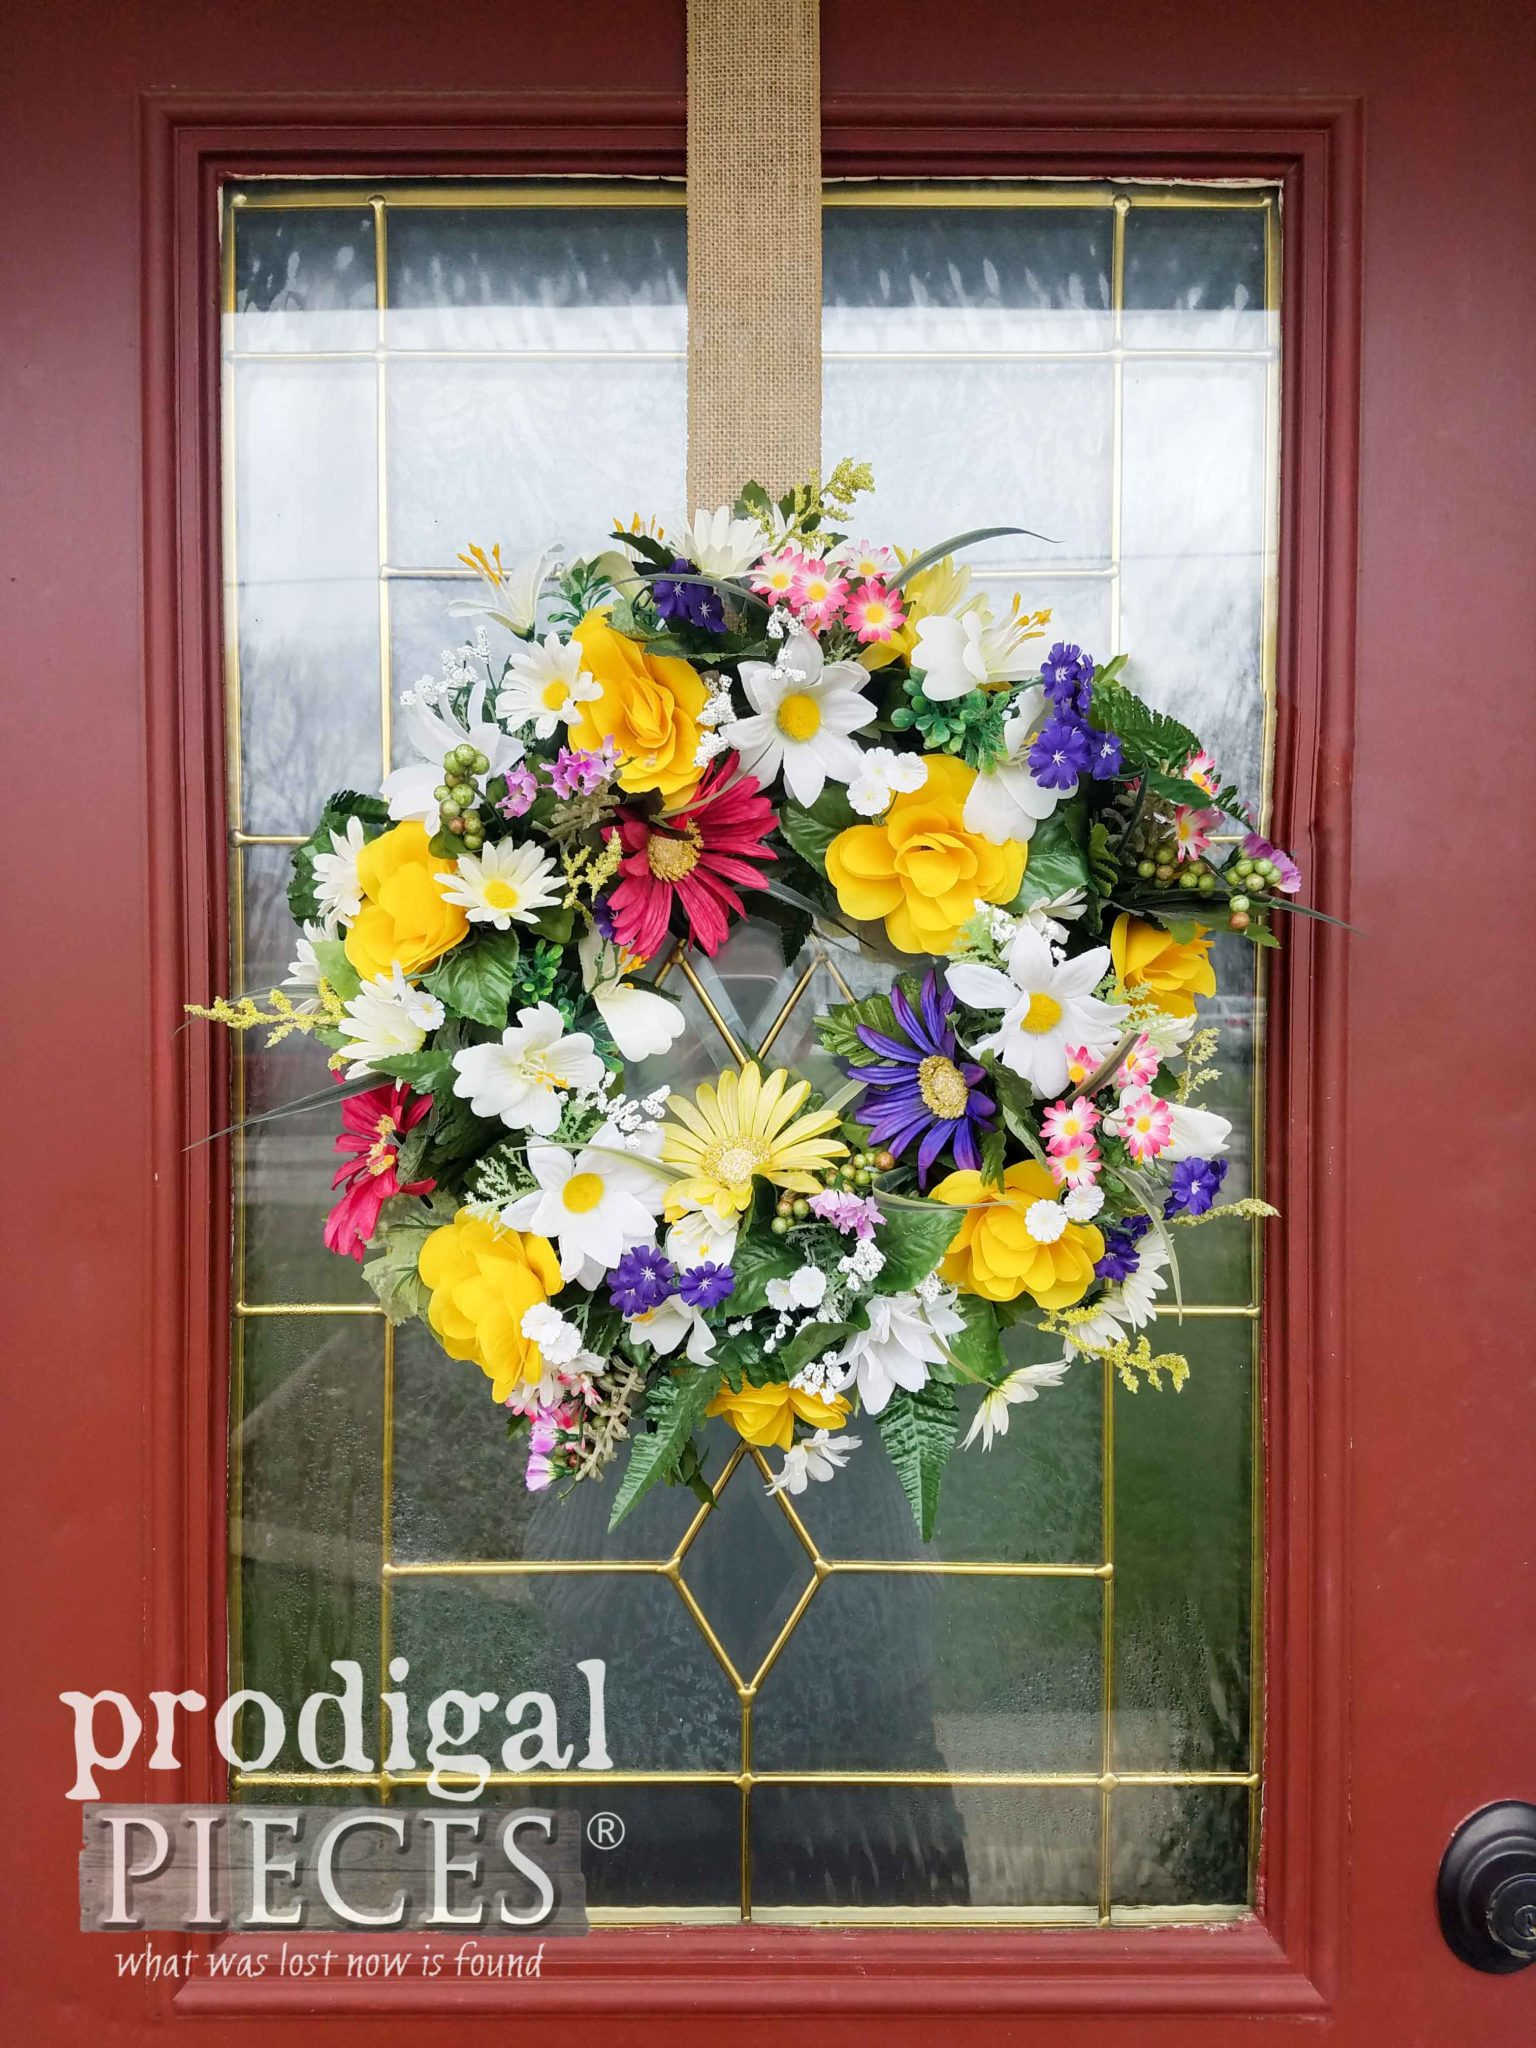 DIY Spring Wreath from Cast-Off Finds by Larissa of Prodigal Pieces | prodigalpieces.com